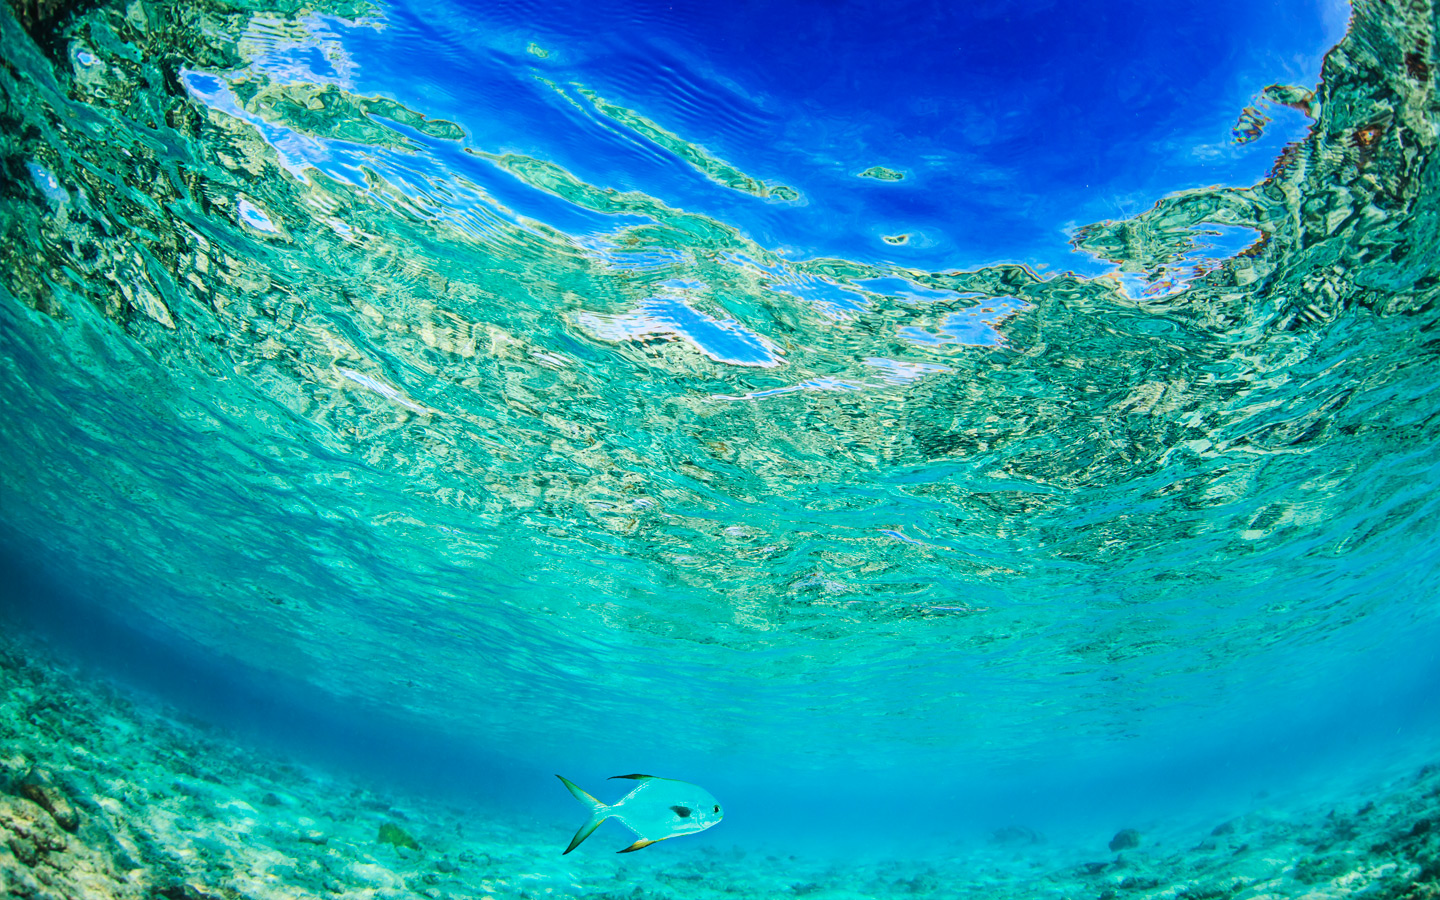 Ocean UnderWater surface with sandy bottom. Only fish in shallow water. Tropical Daylight through water.